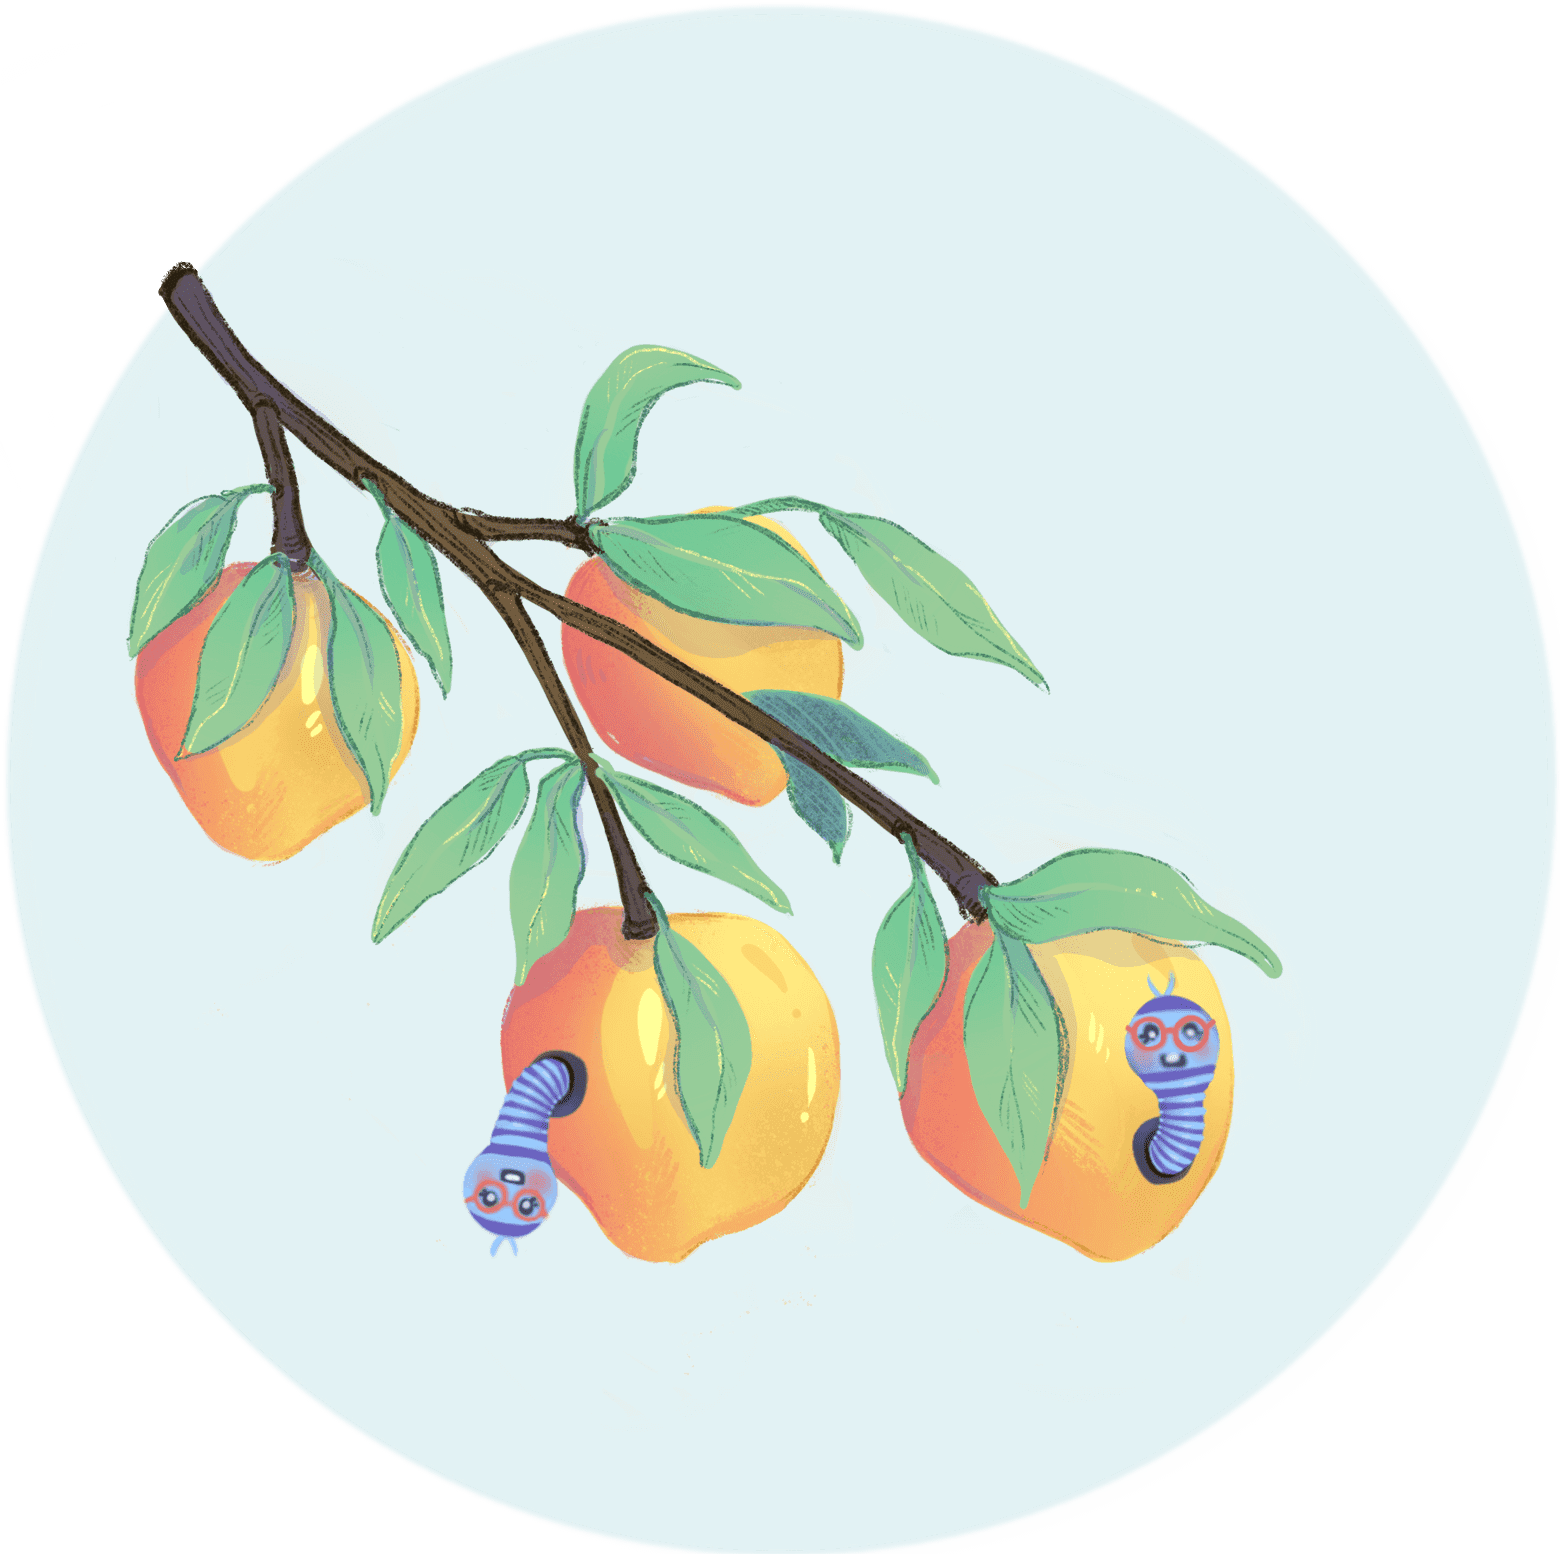 Illustration of worms coming out of peaches